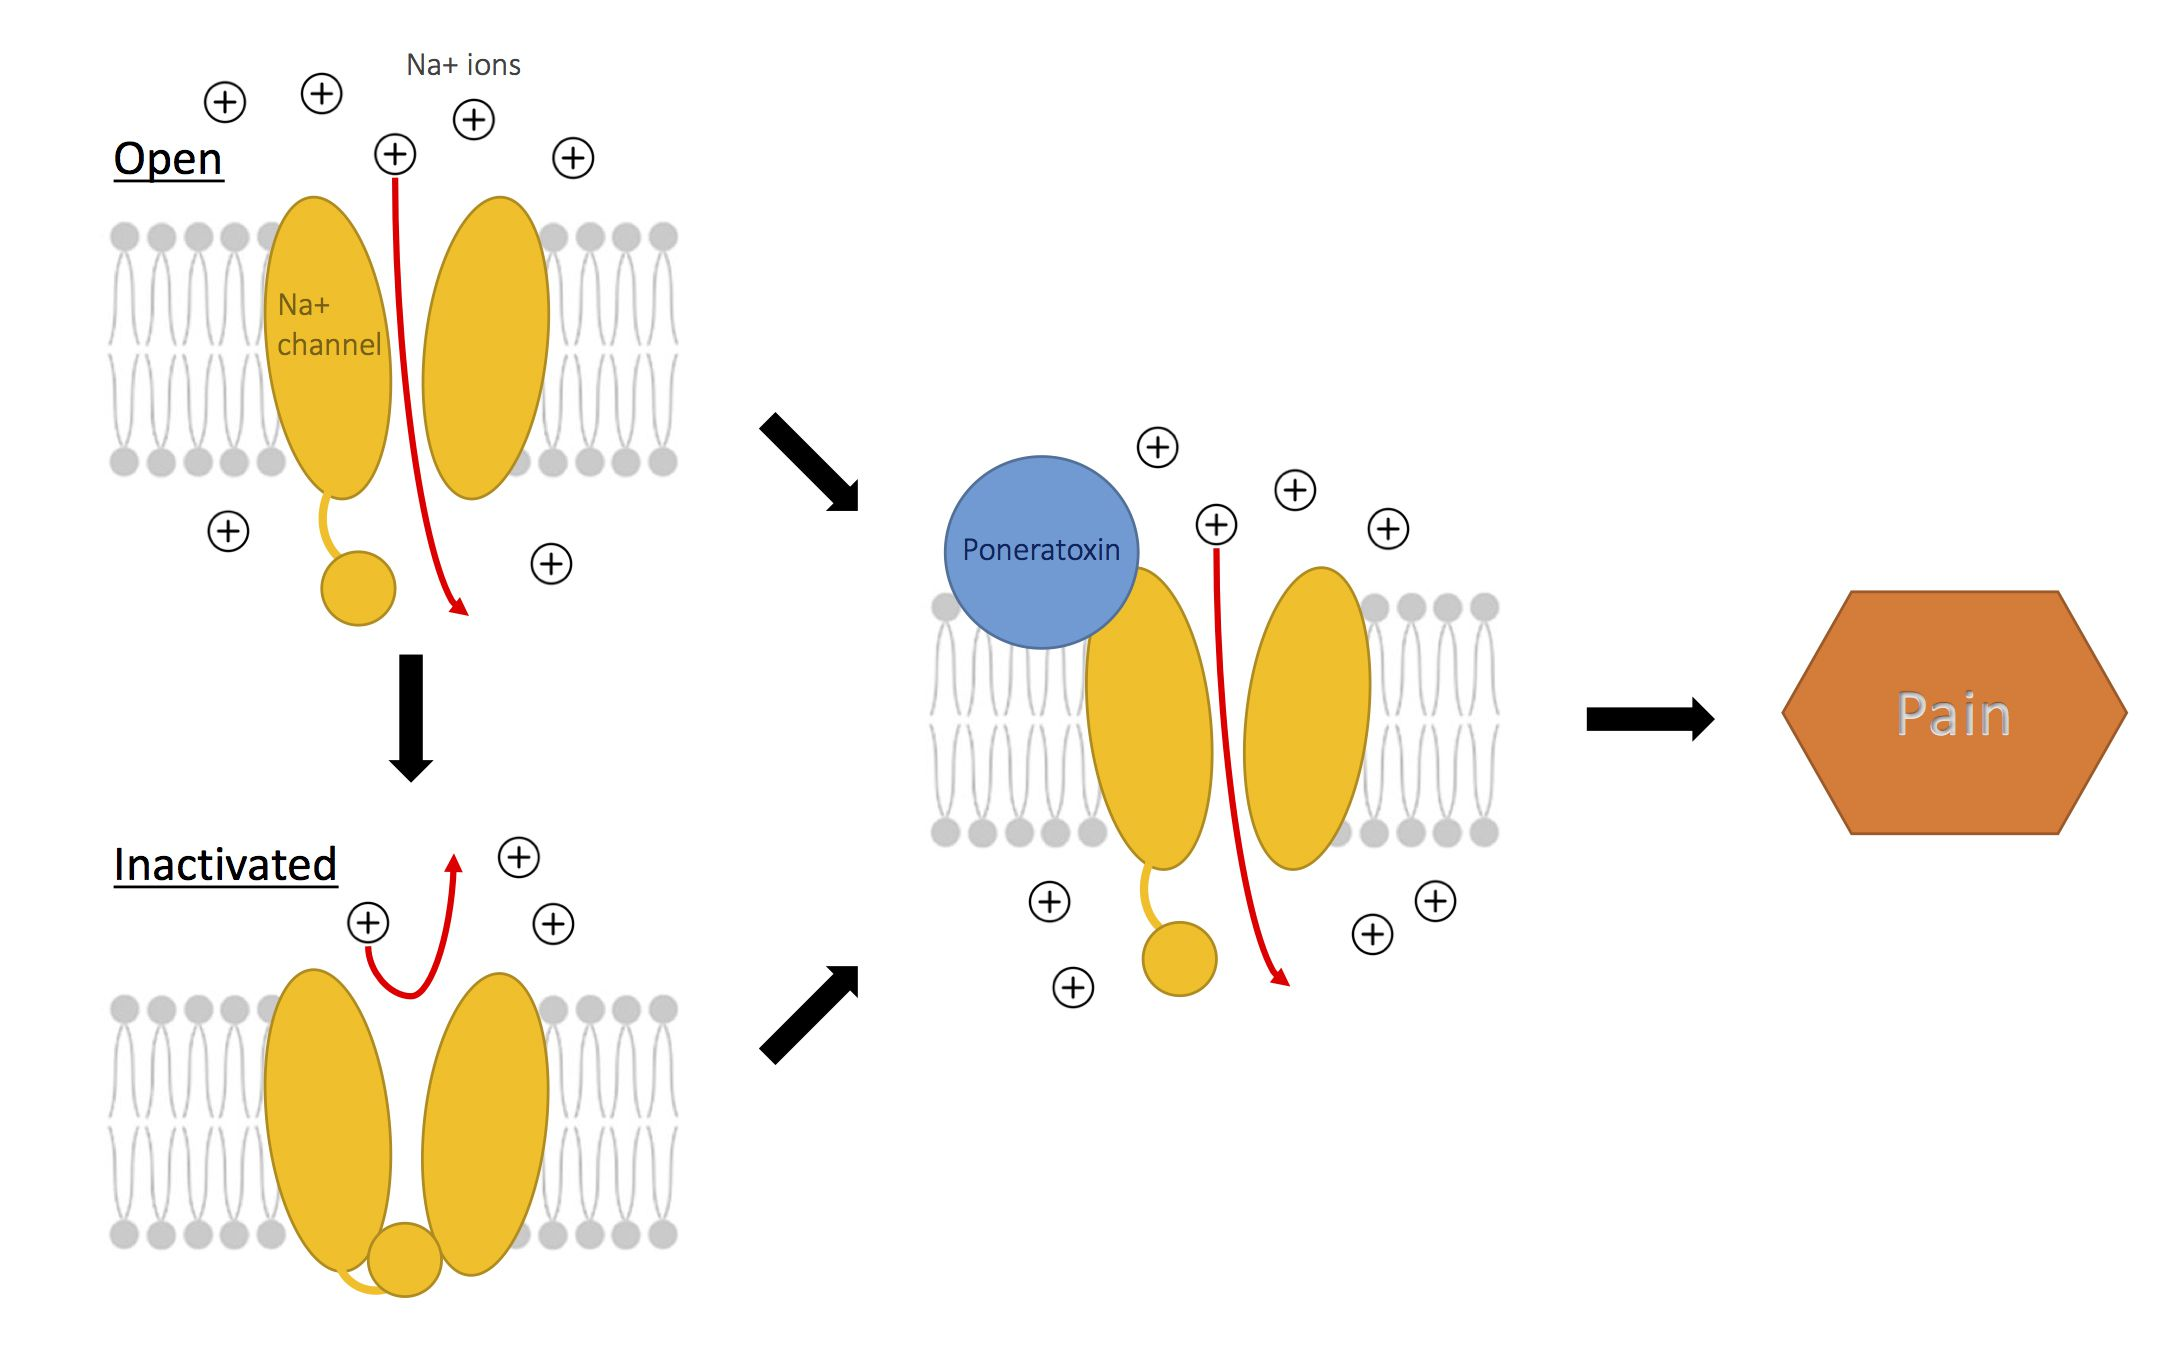 Action of poneratoxin on sodium channels to produce pain.